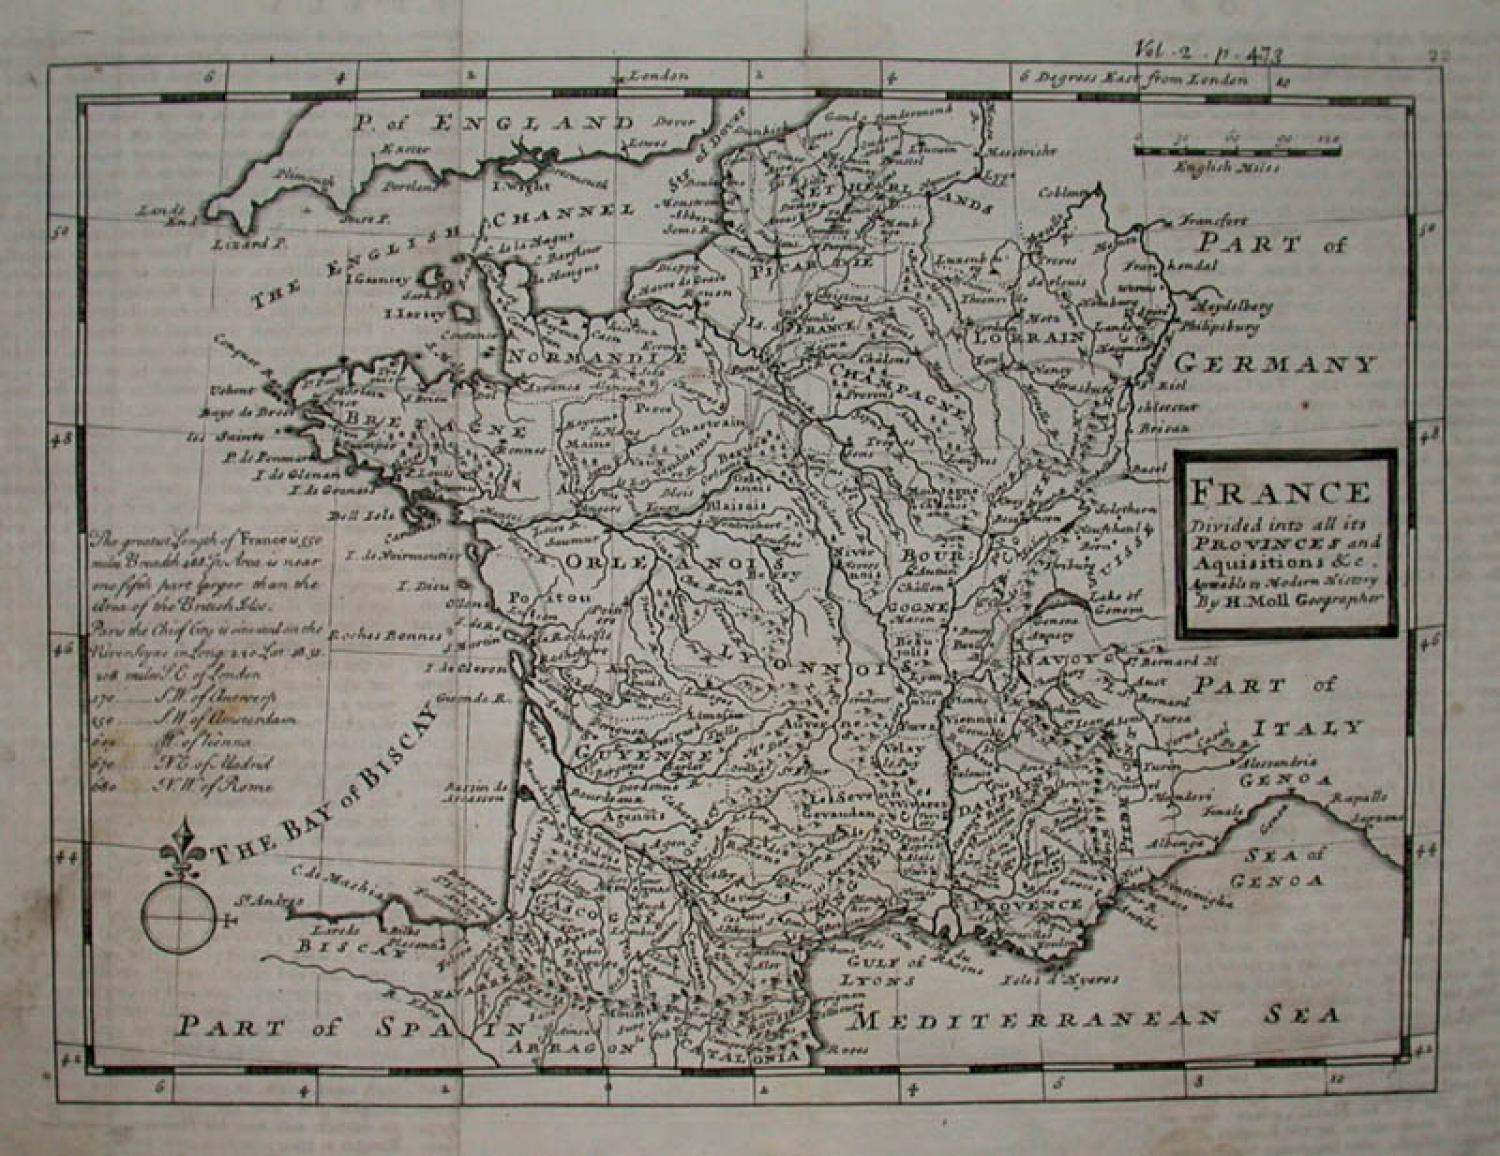 SOLD FRANCE Divided into all its PROVINCES and Aquisitions